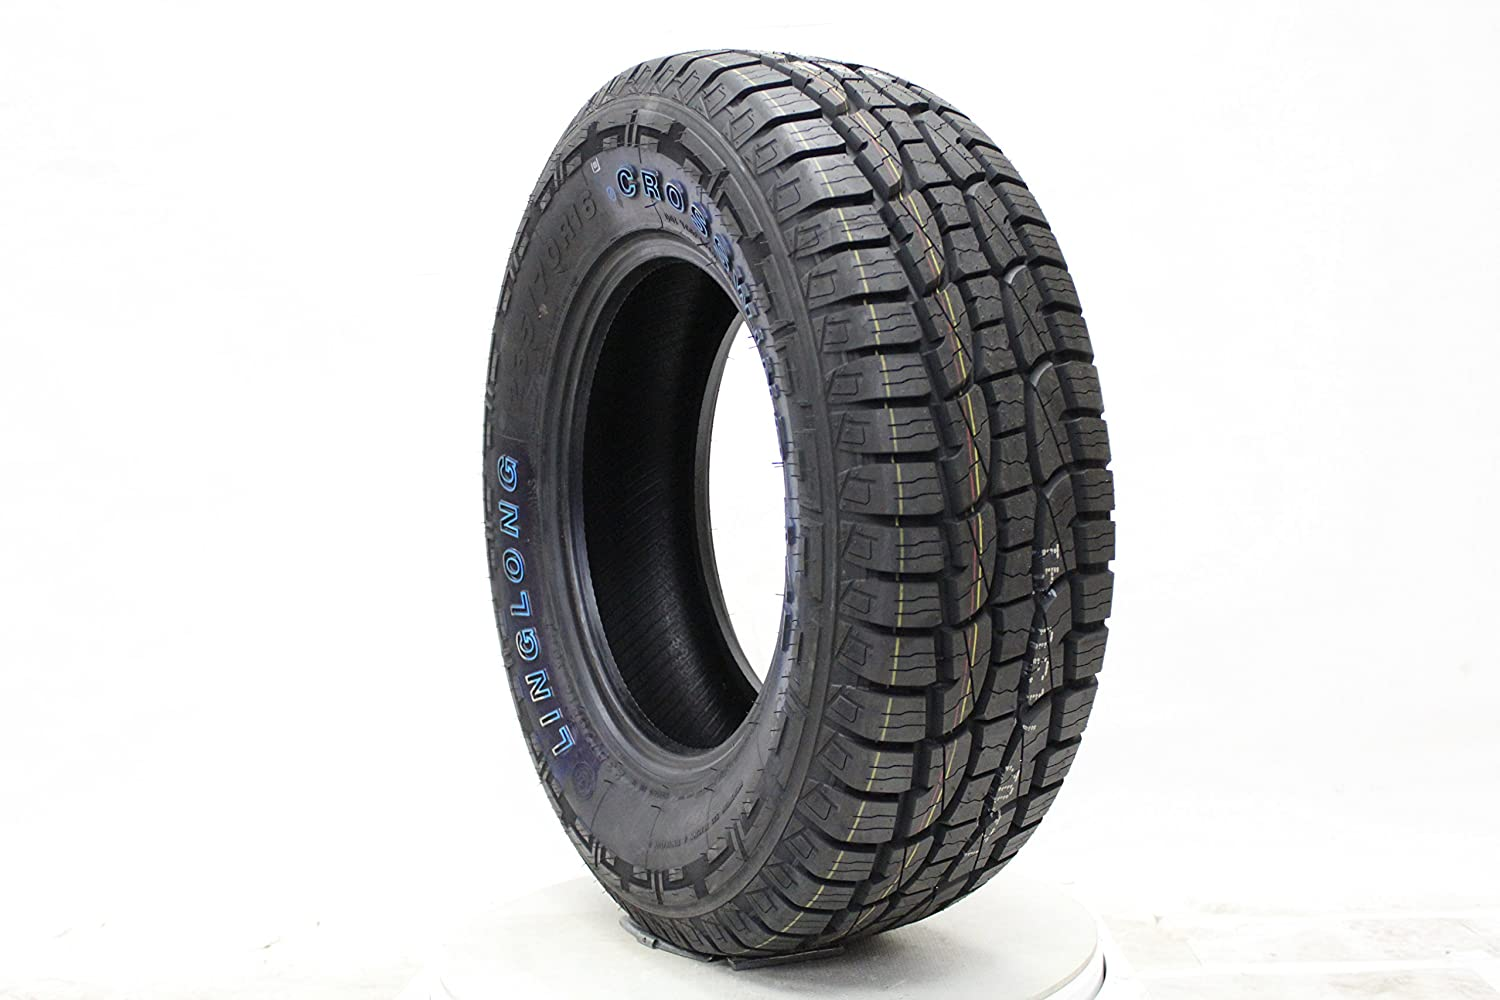 P275 65r18 Tires >> Amazon Com Crosswind A T All Season Radial Tire 275 65r18 116t